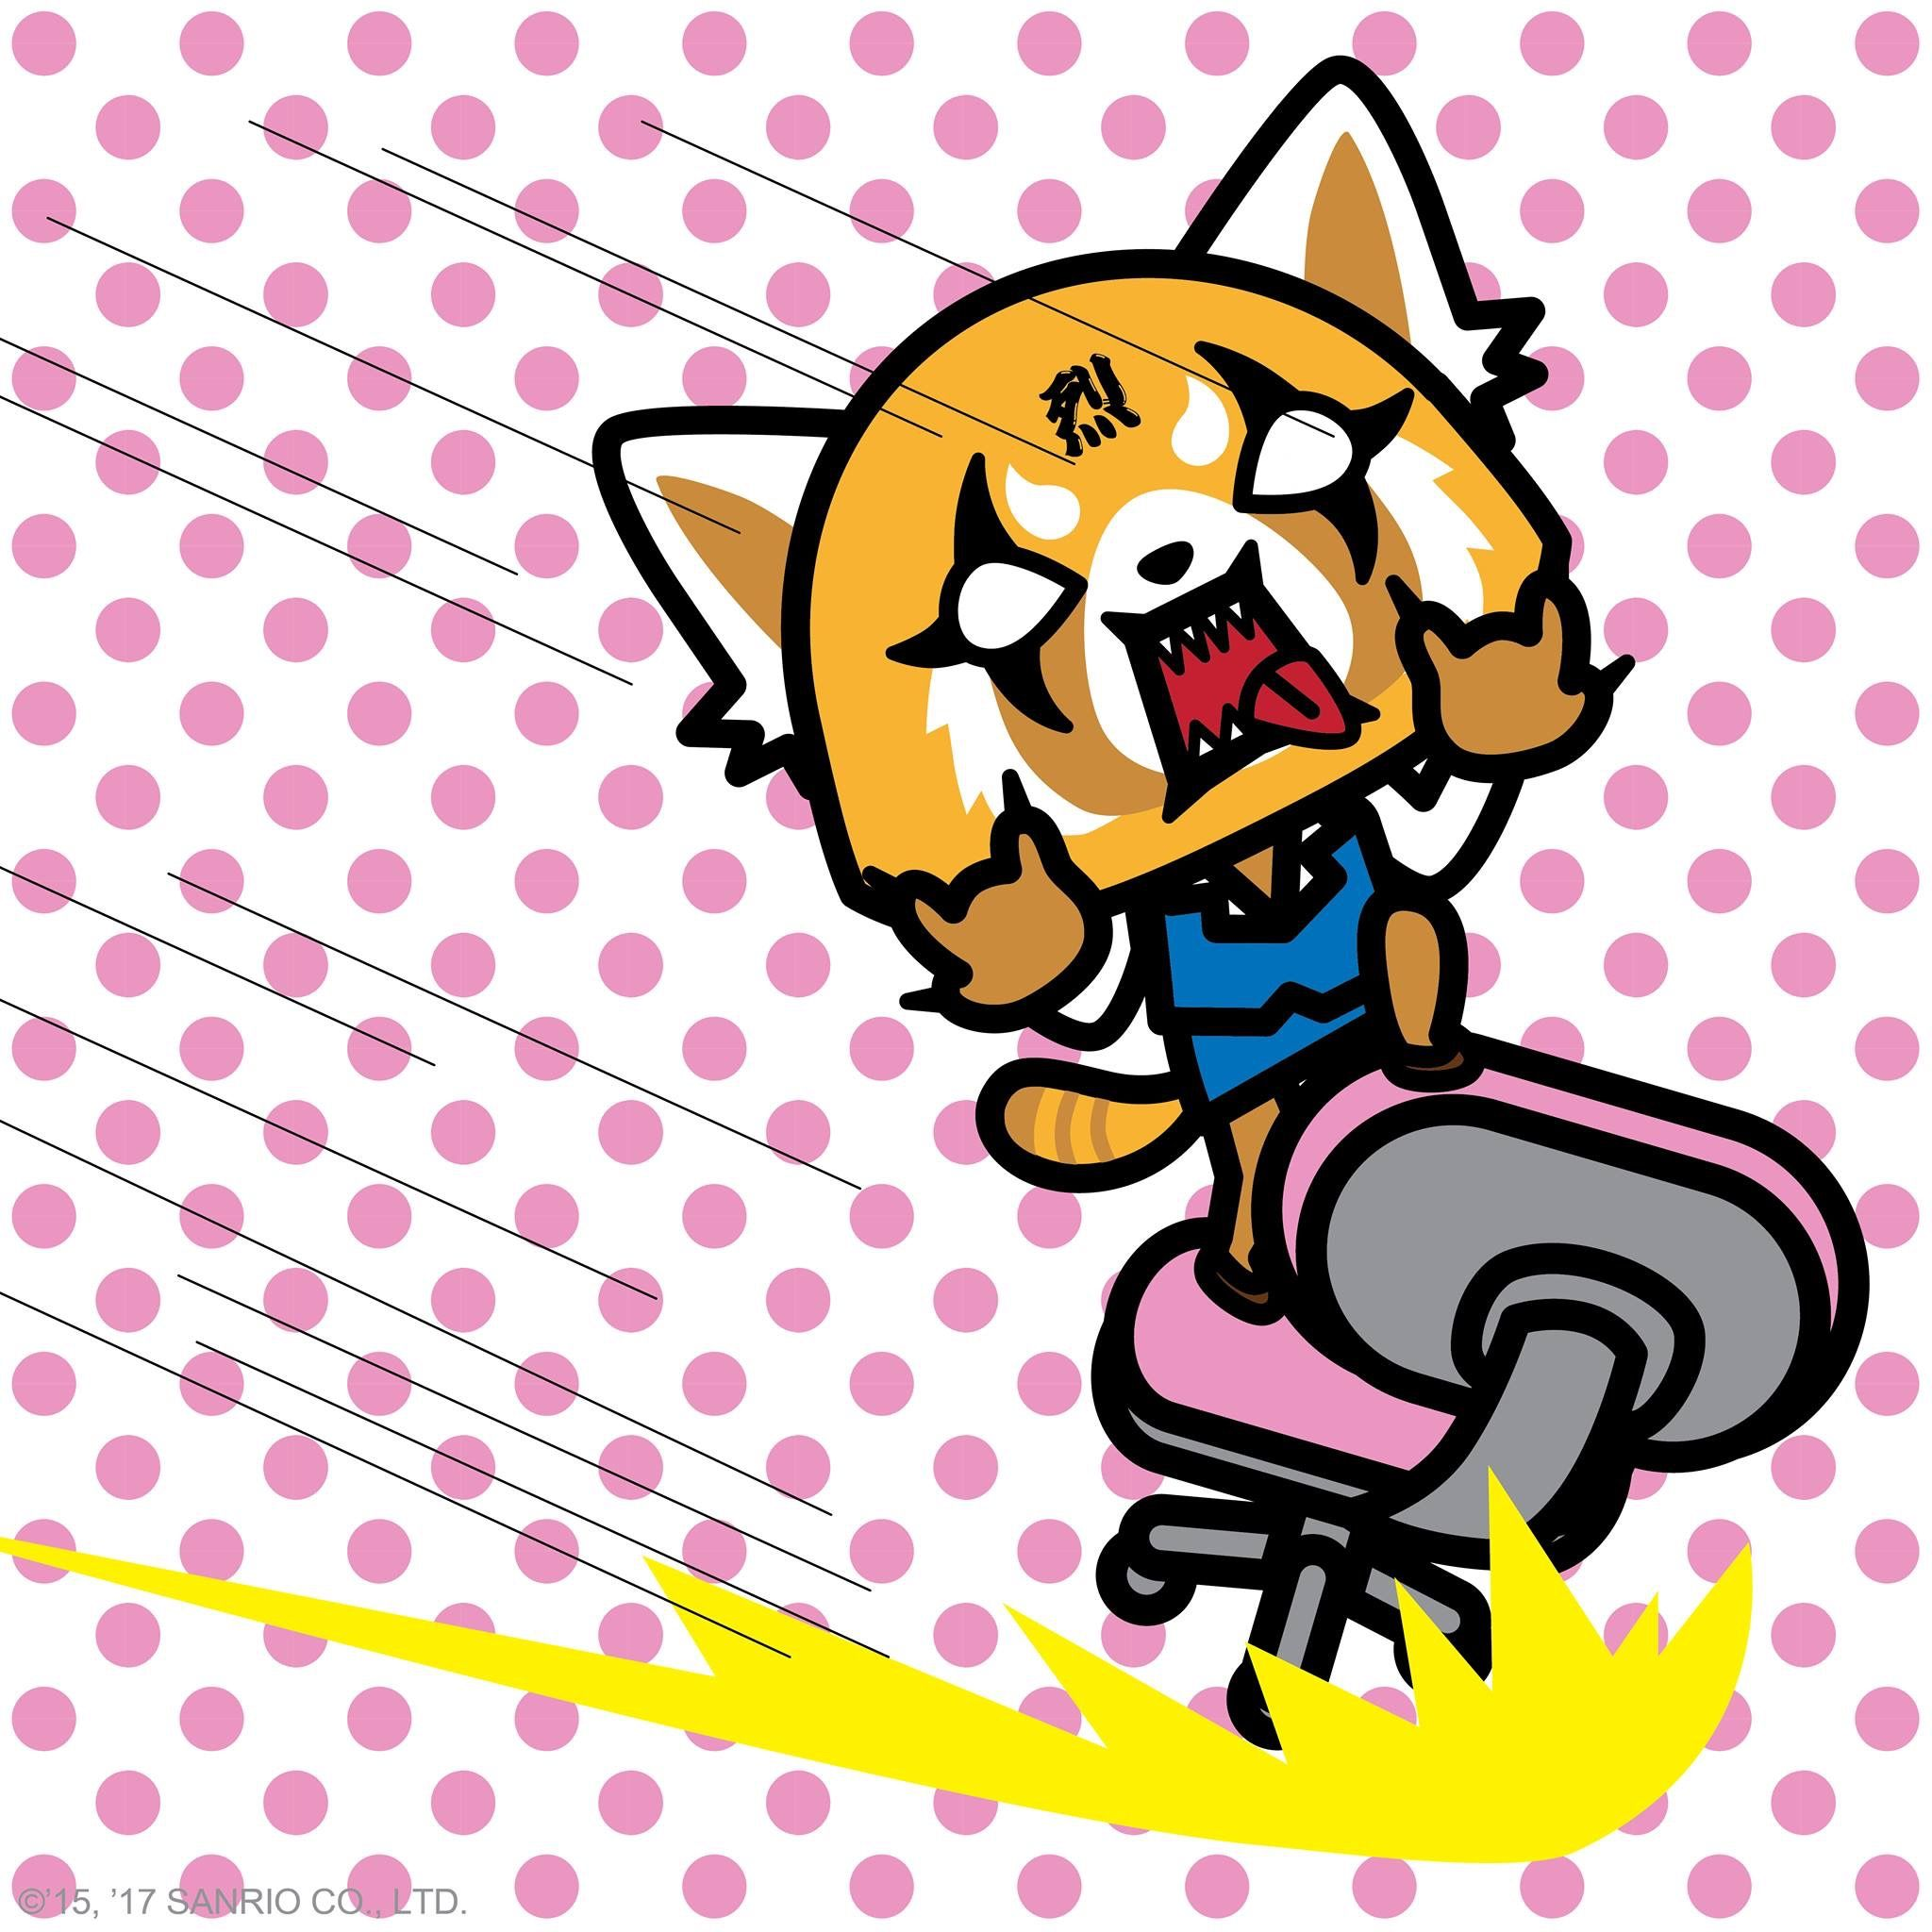 Pin by OUM..☆彡 on Aggretsuko in 2020 Popular anime, My